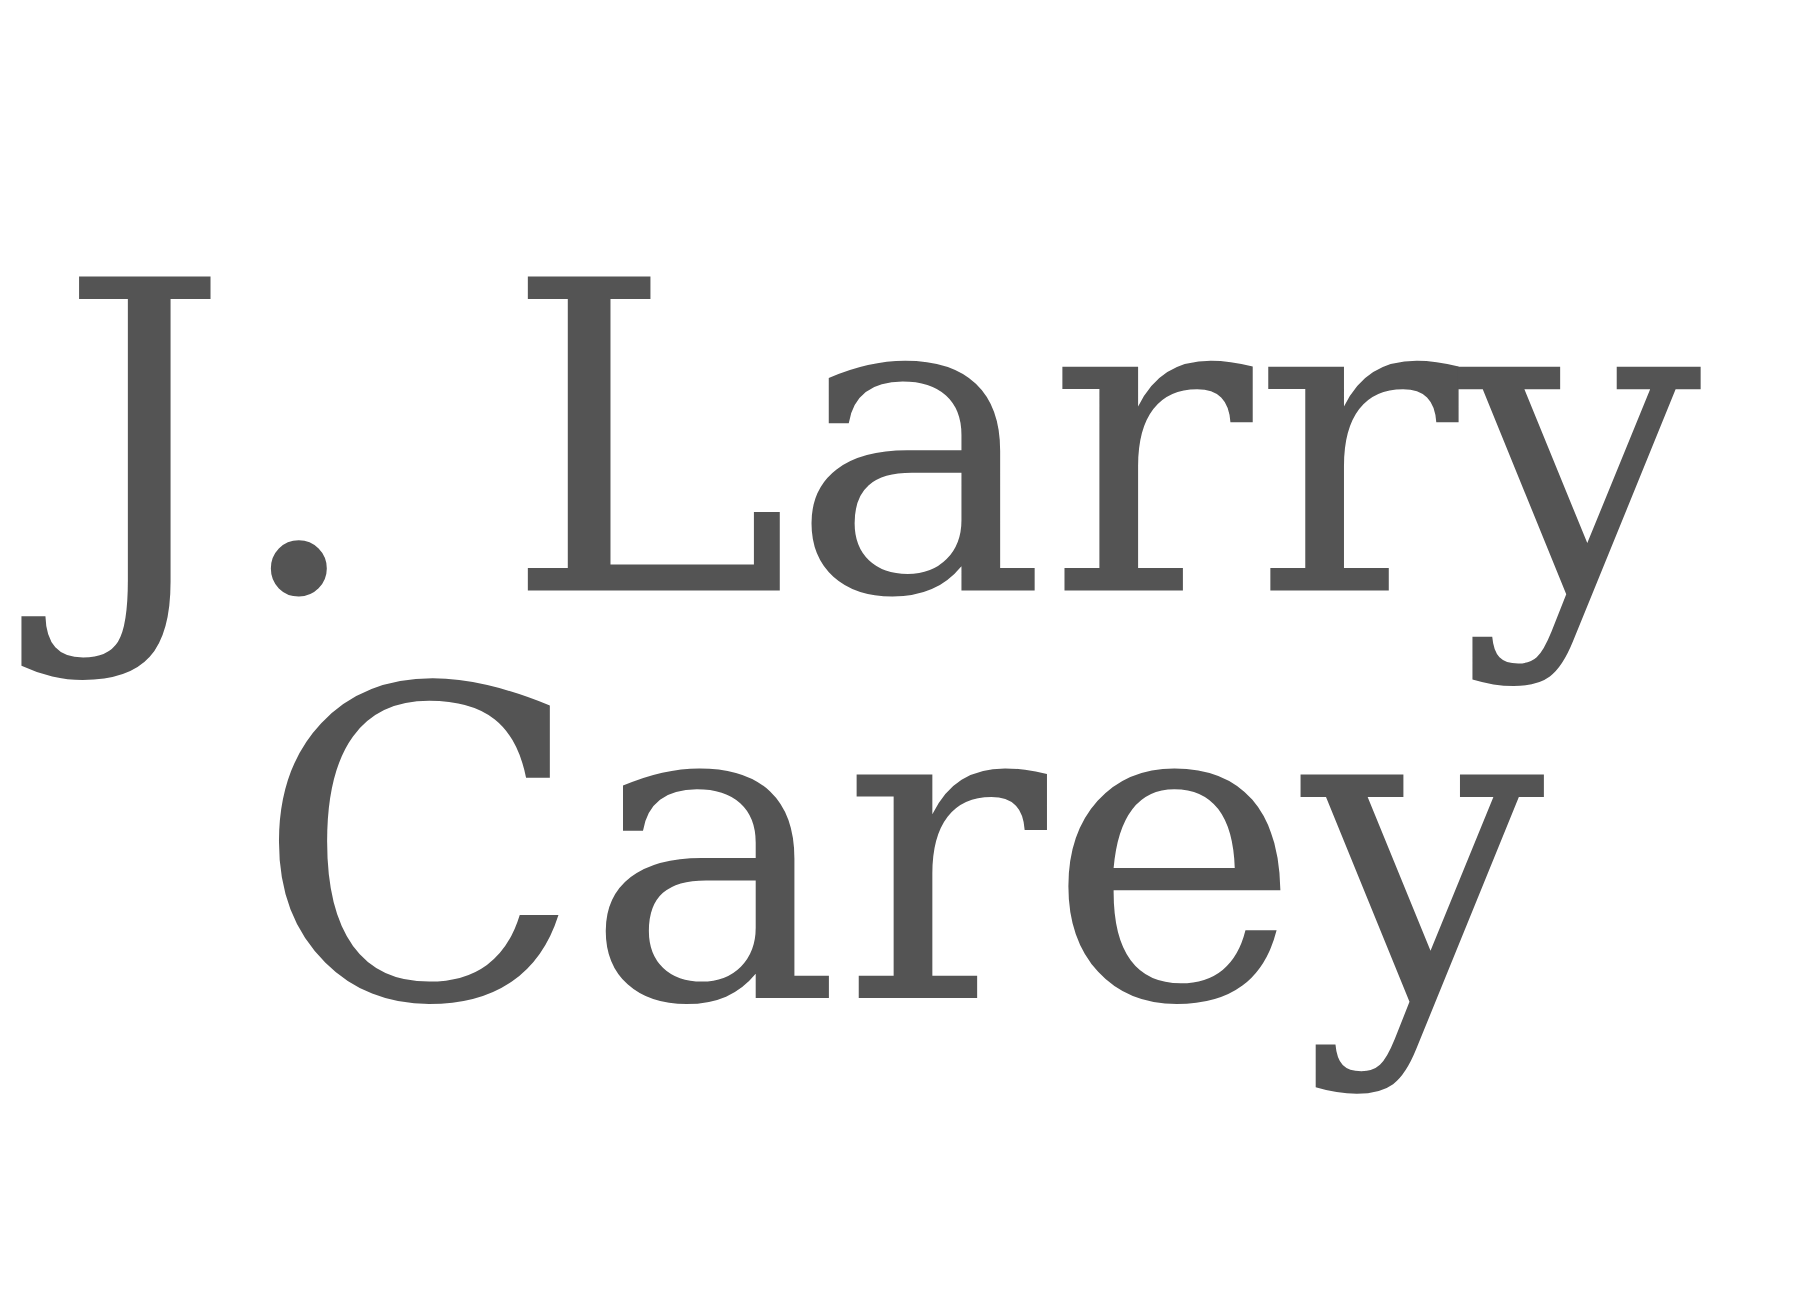 J.Larry Carey- DOP |  Lighting Cameraman | Videographer